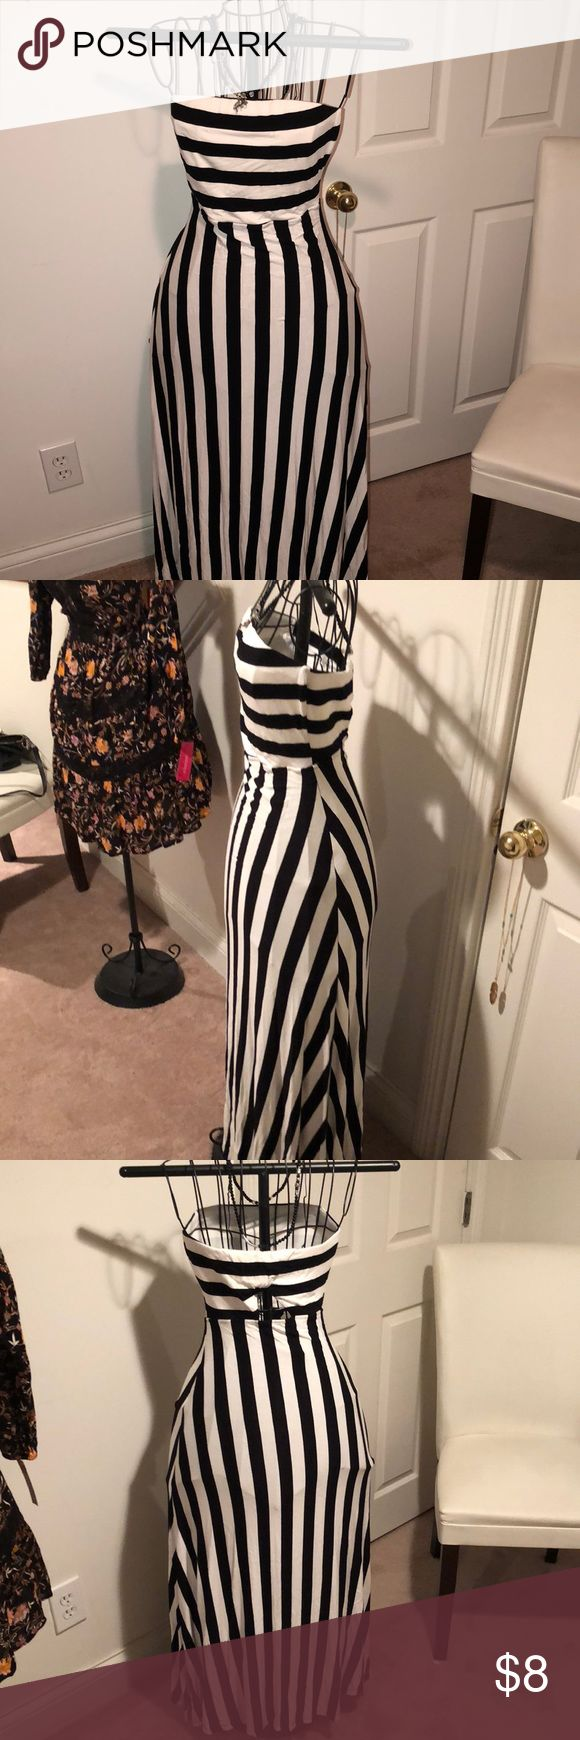 Black & white stripped maxi dress Excellent condition. NEVER WORN! Dresses Maxi